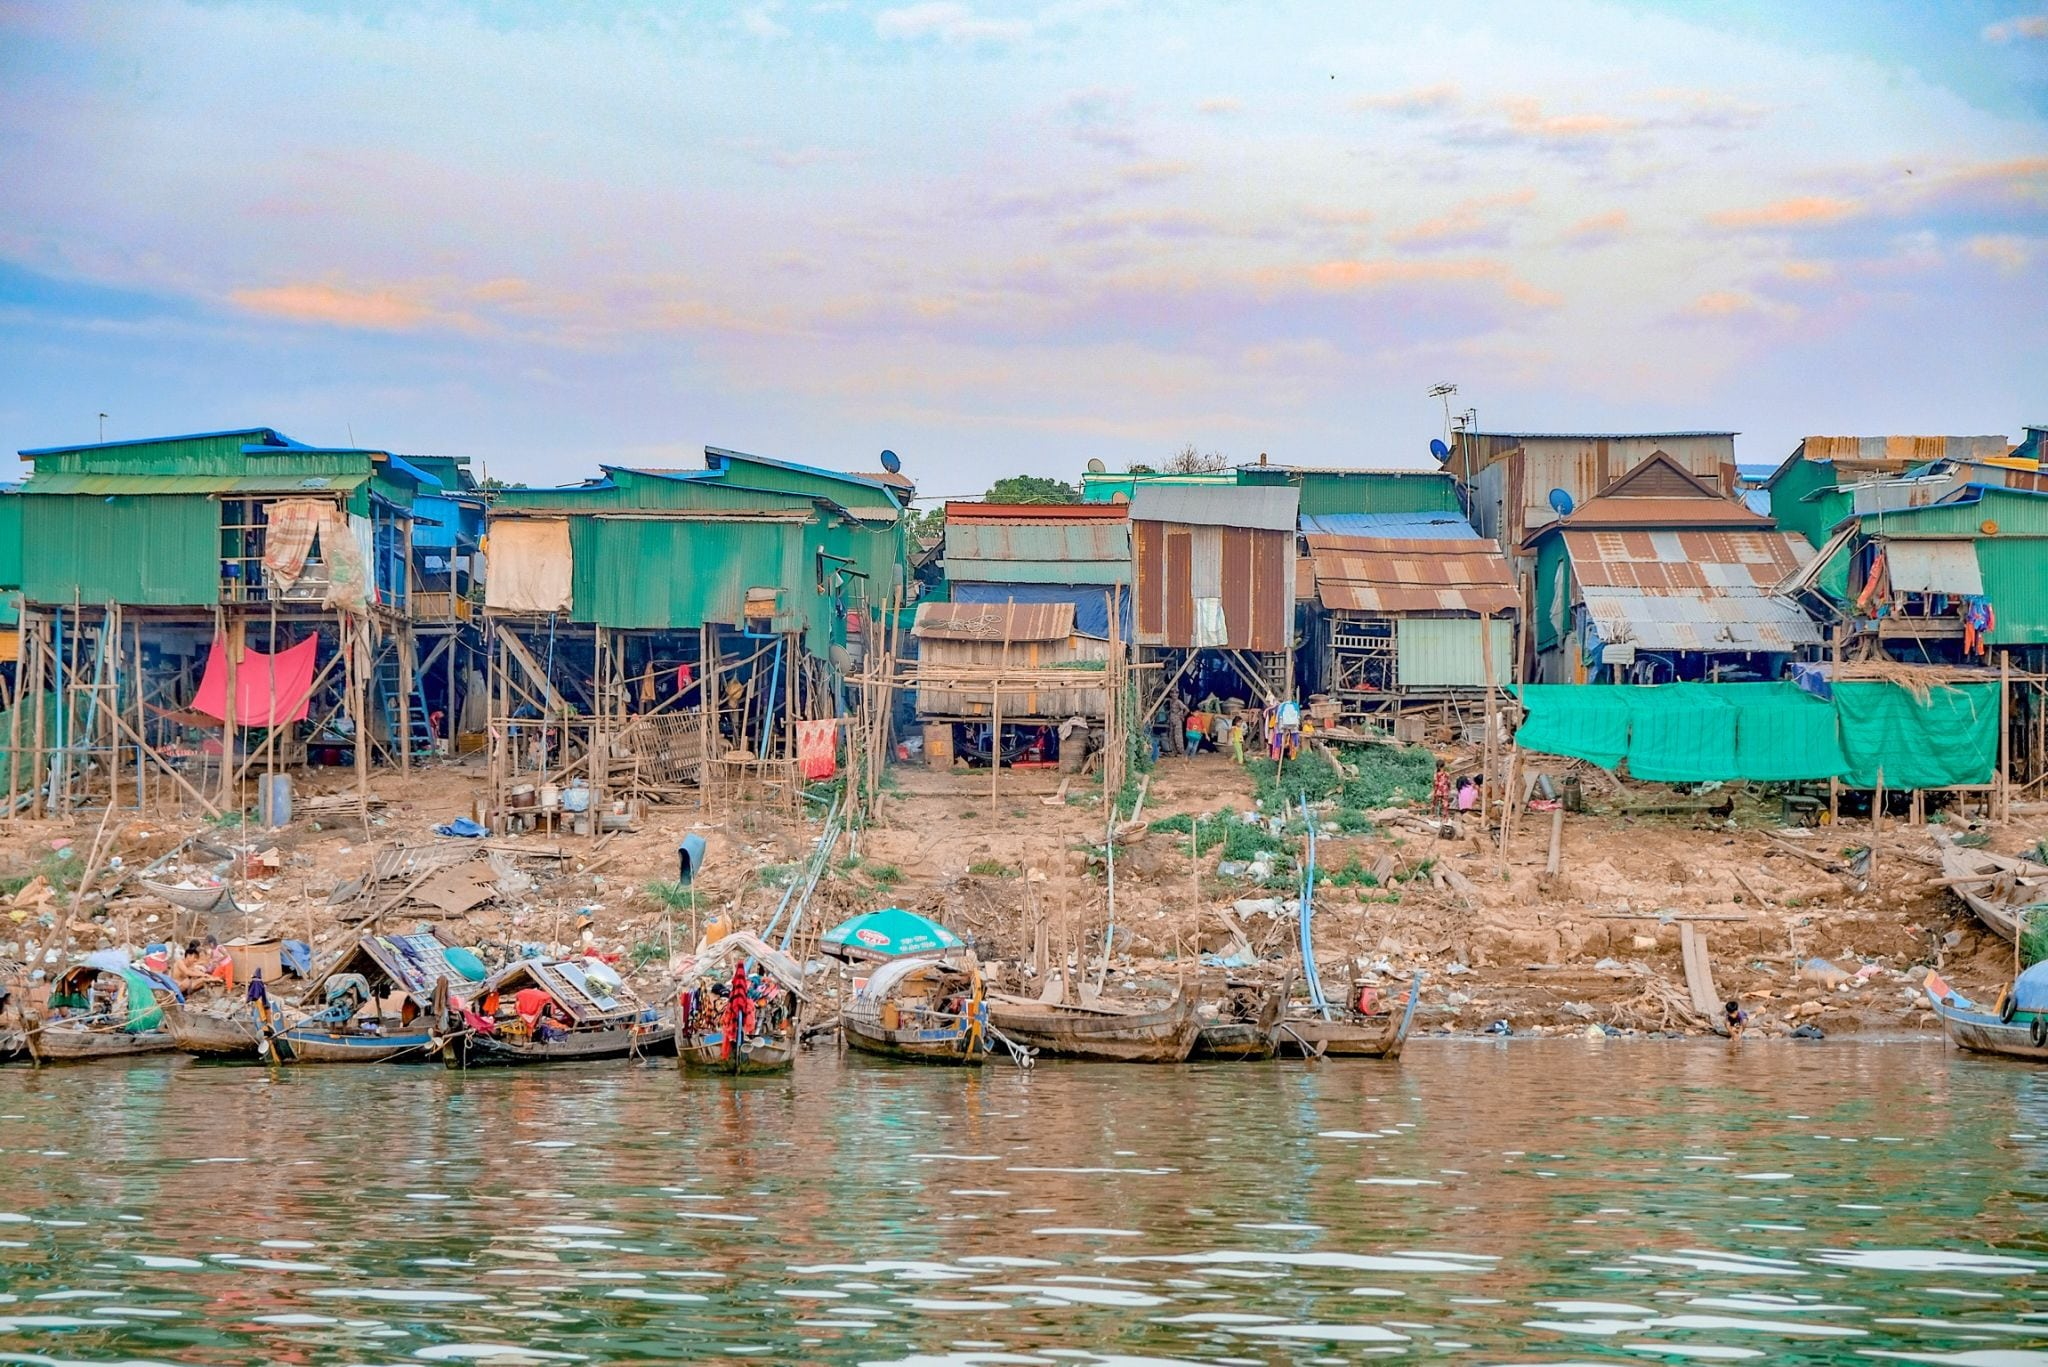 Slum towns around Mekong Floatation River Lounge